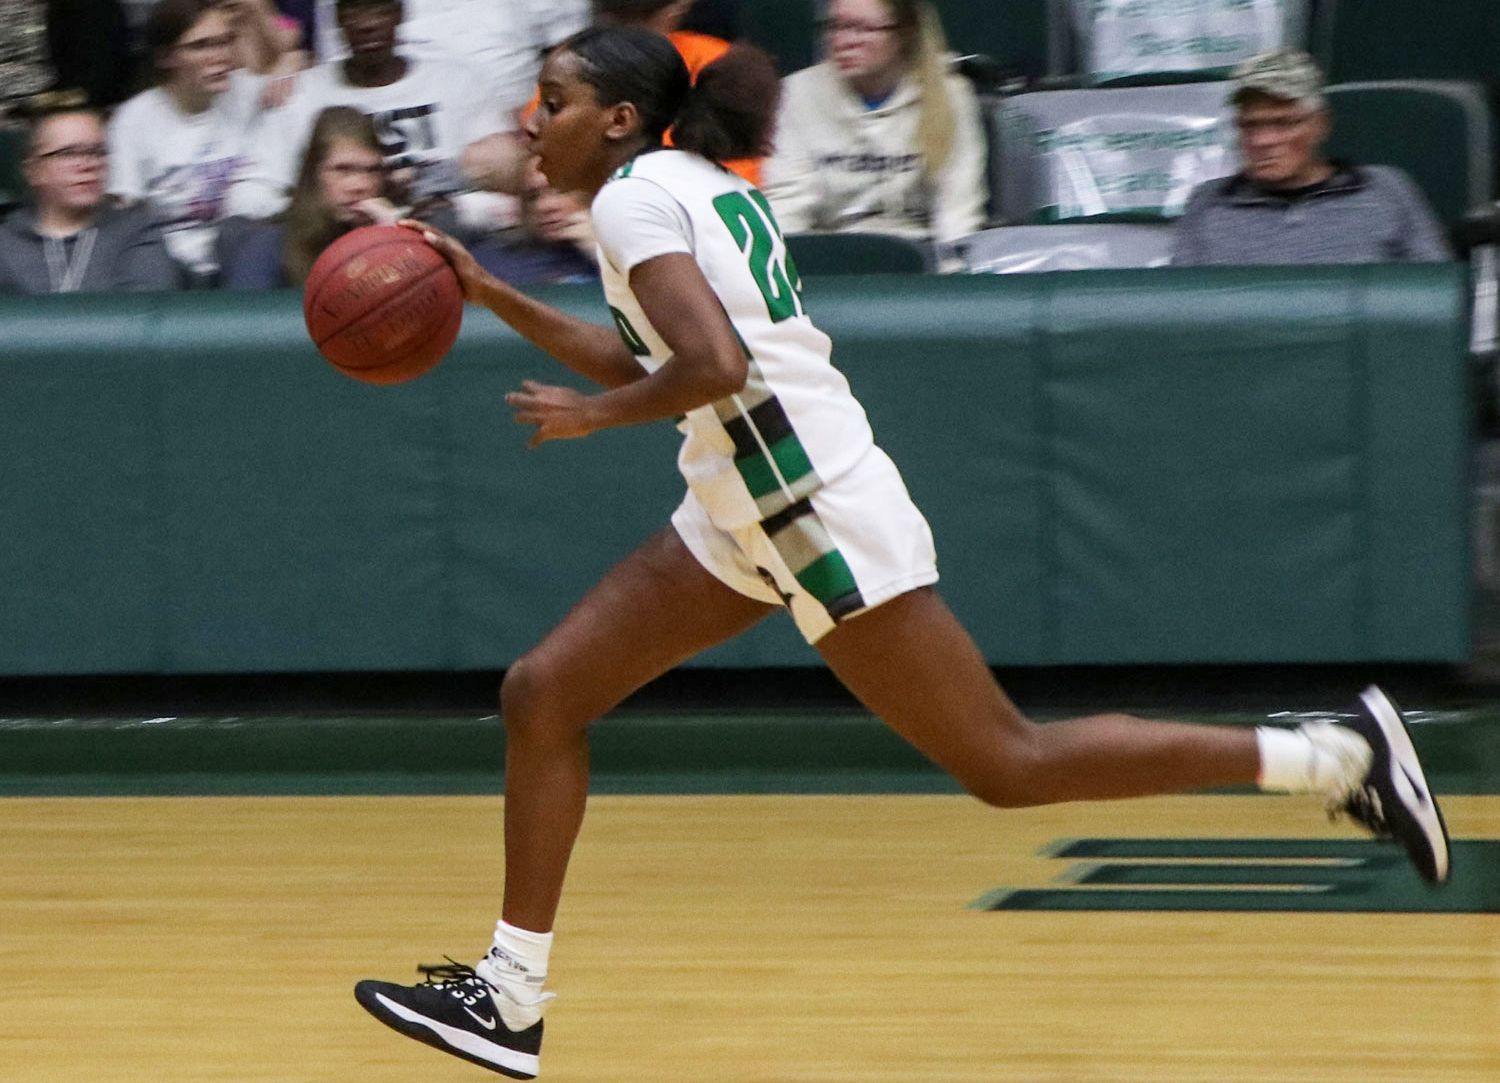 The Lady Saints came up short against South Plains College, Dec. 4. Leilani Augmon, freshman from California, had six points on the point. (file photo)